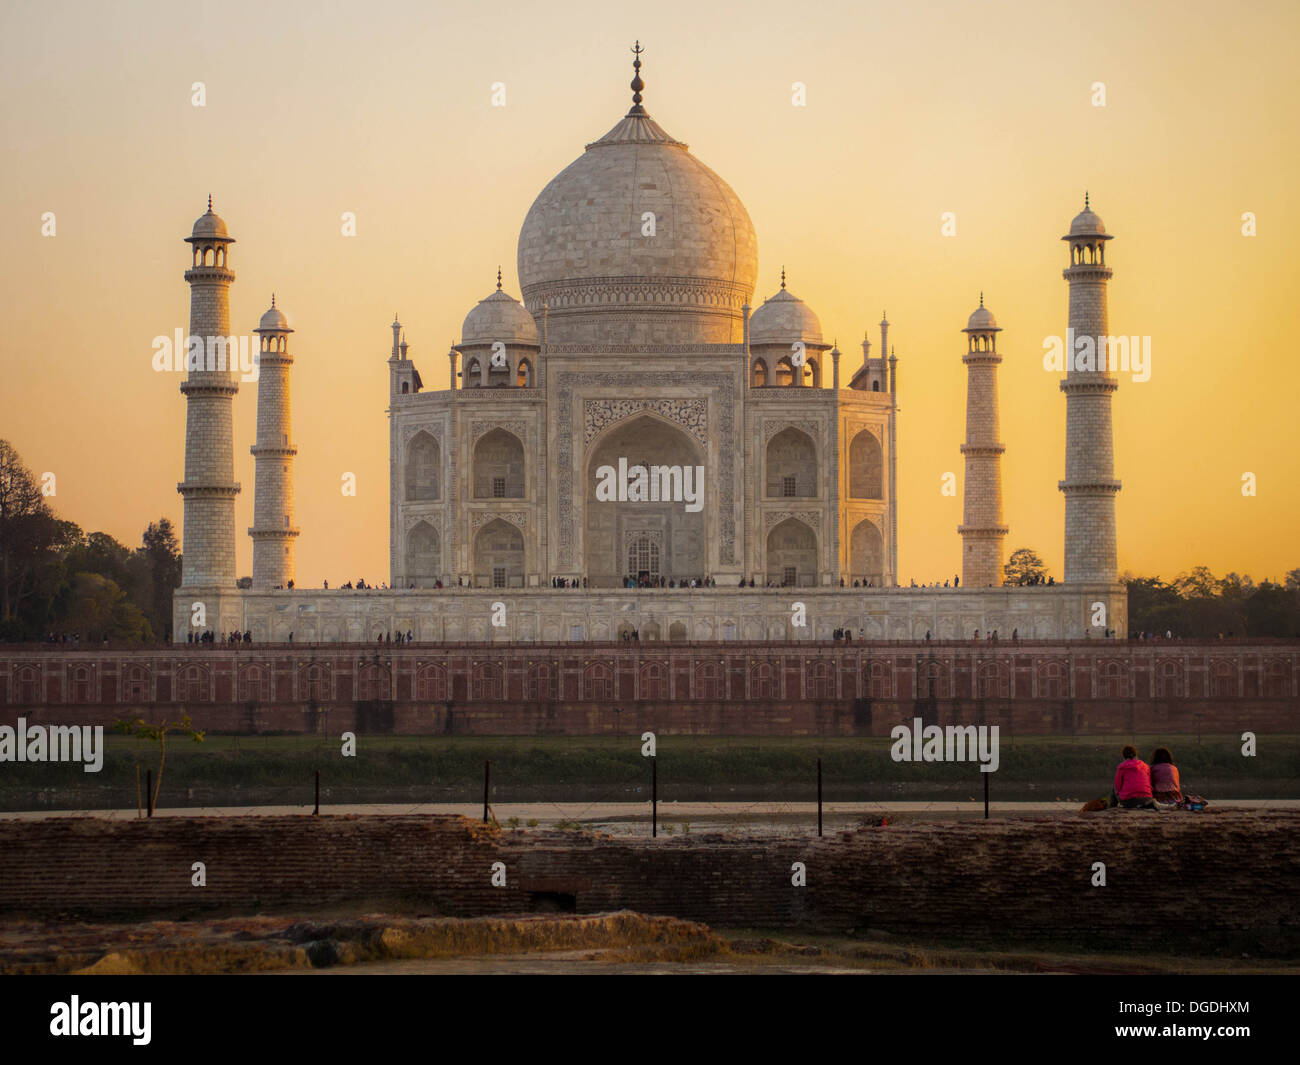 The Taj Mahal at sunset, Agra, India. - Stock Image